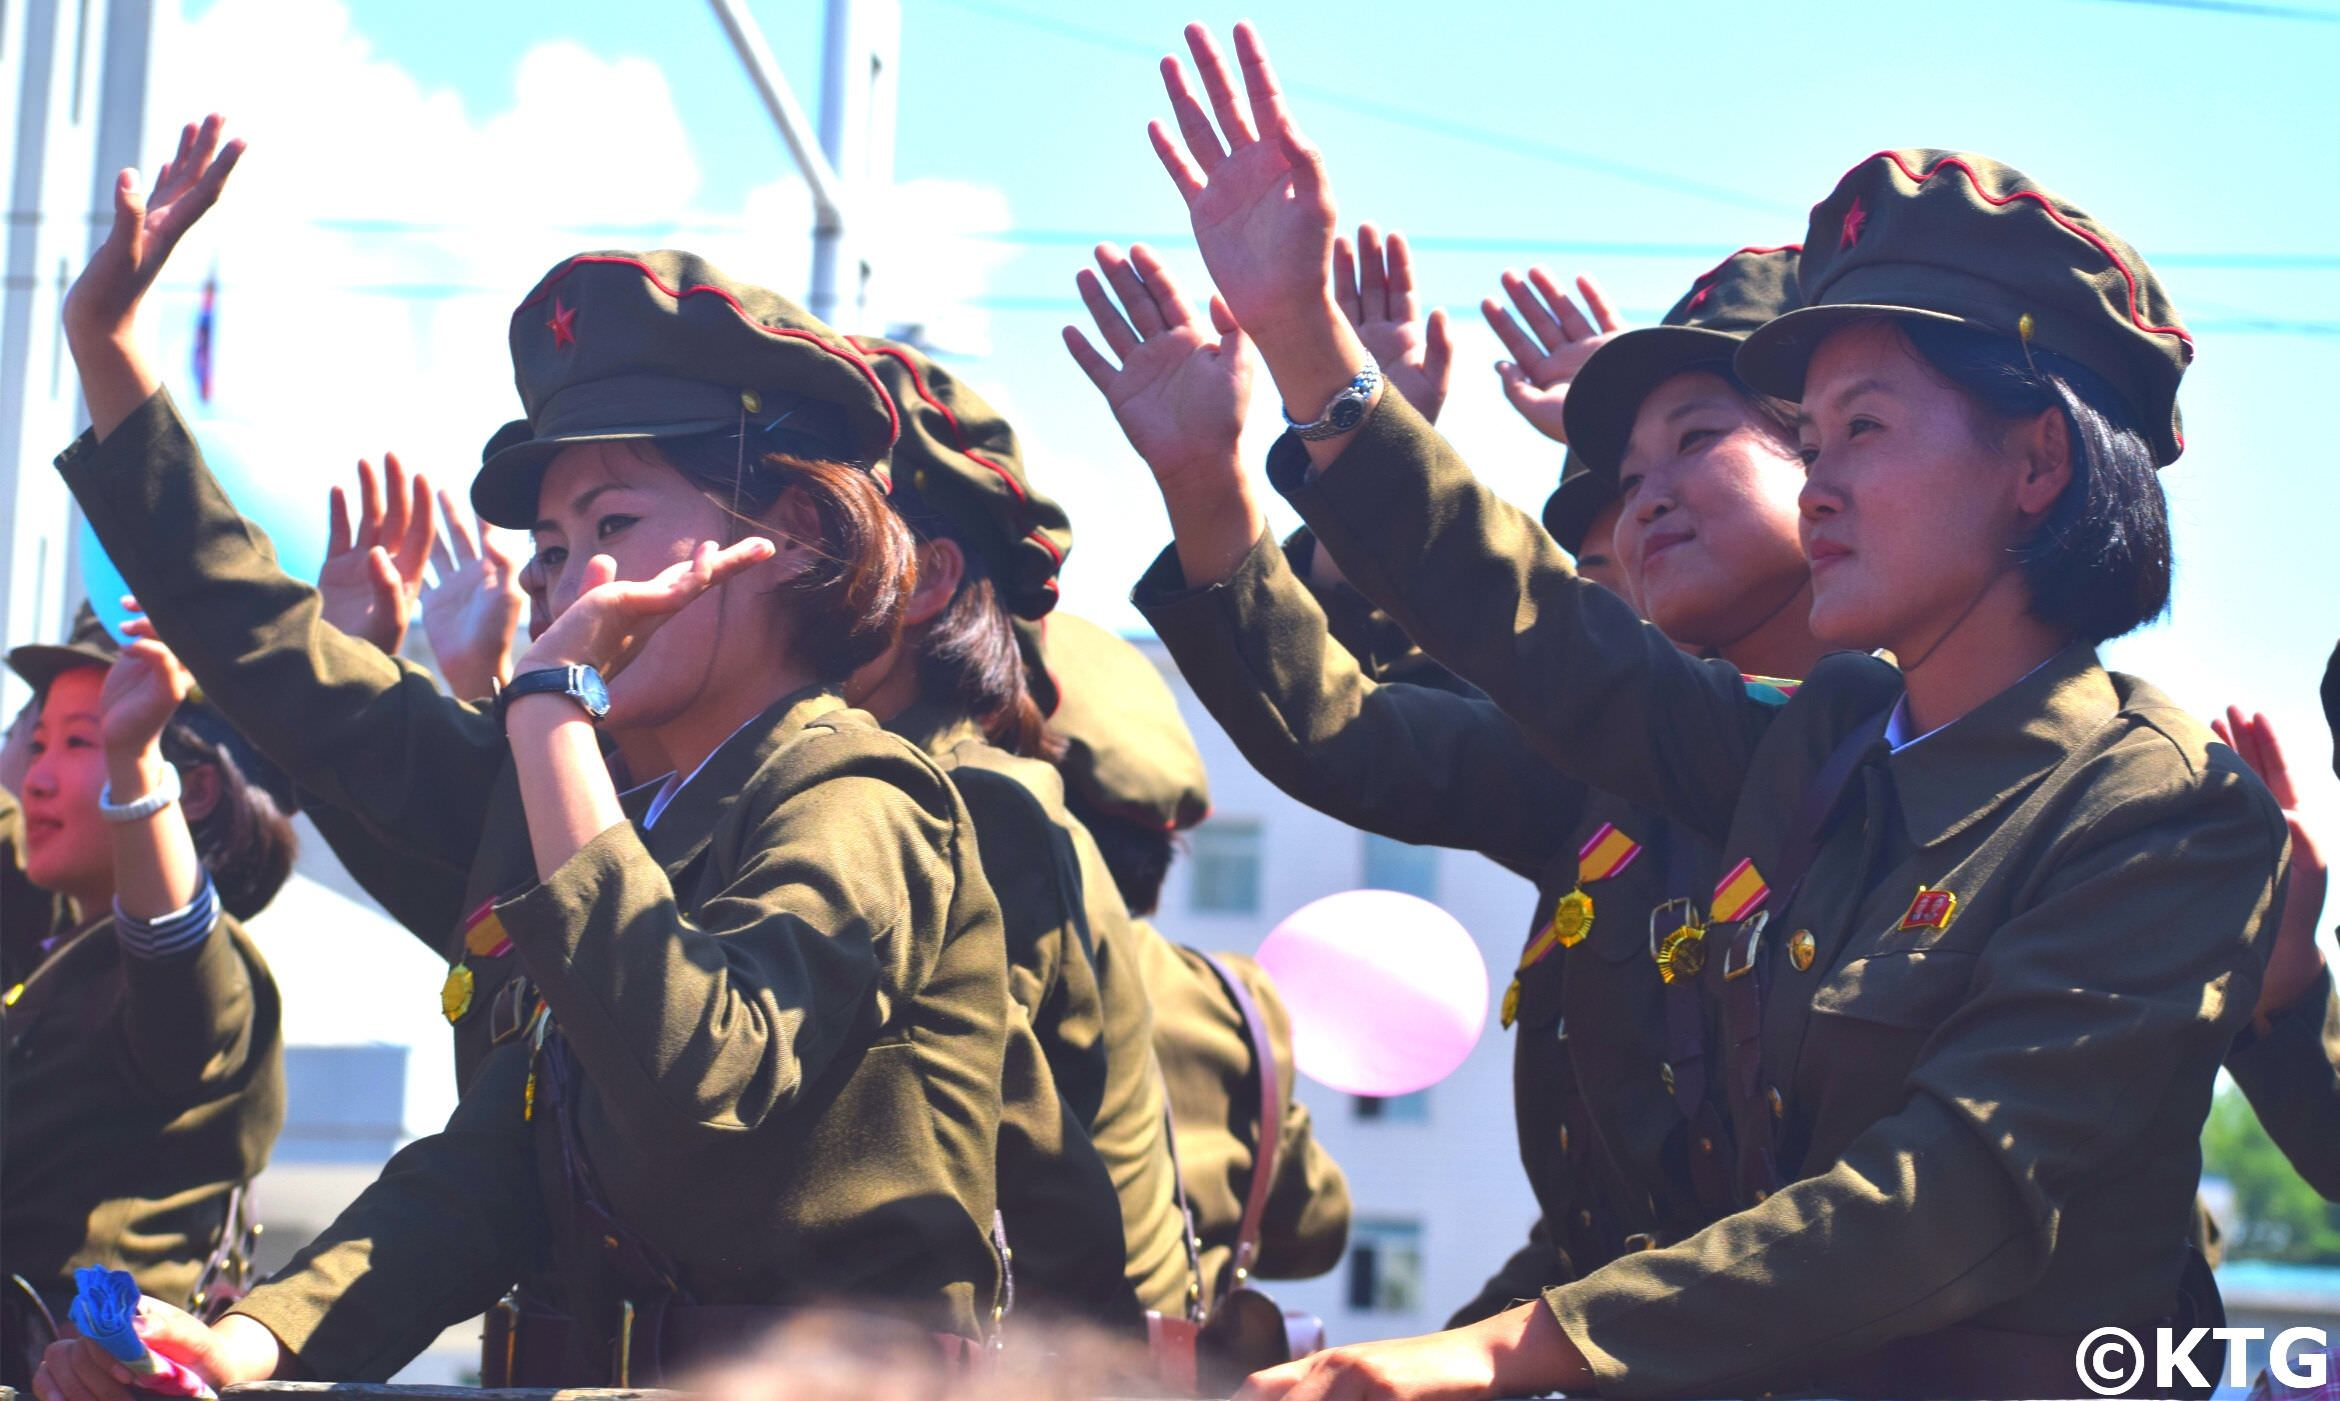 North Korean female soldiers at a military parade in Pyongyang capital city of the DPRK. Trip to North Korea arranged by KTG Tours